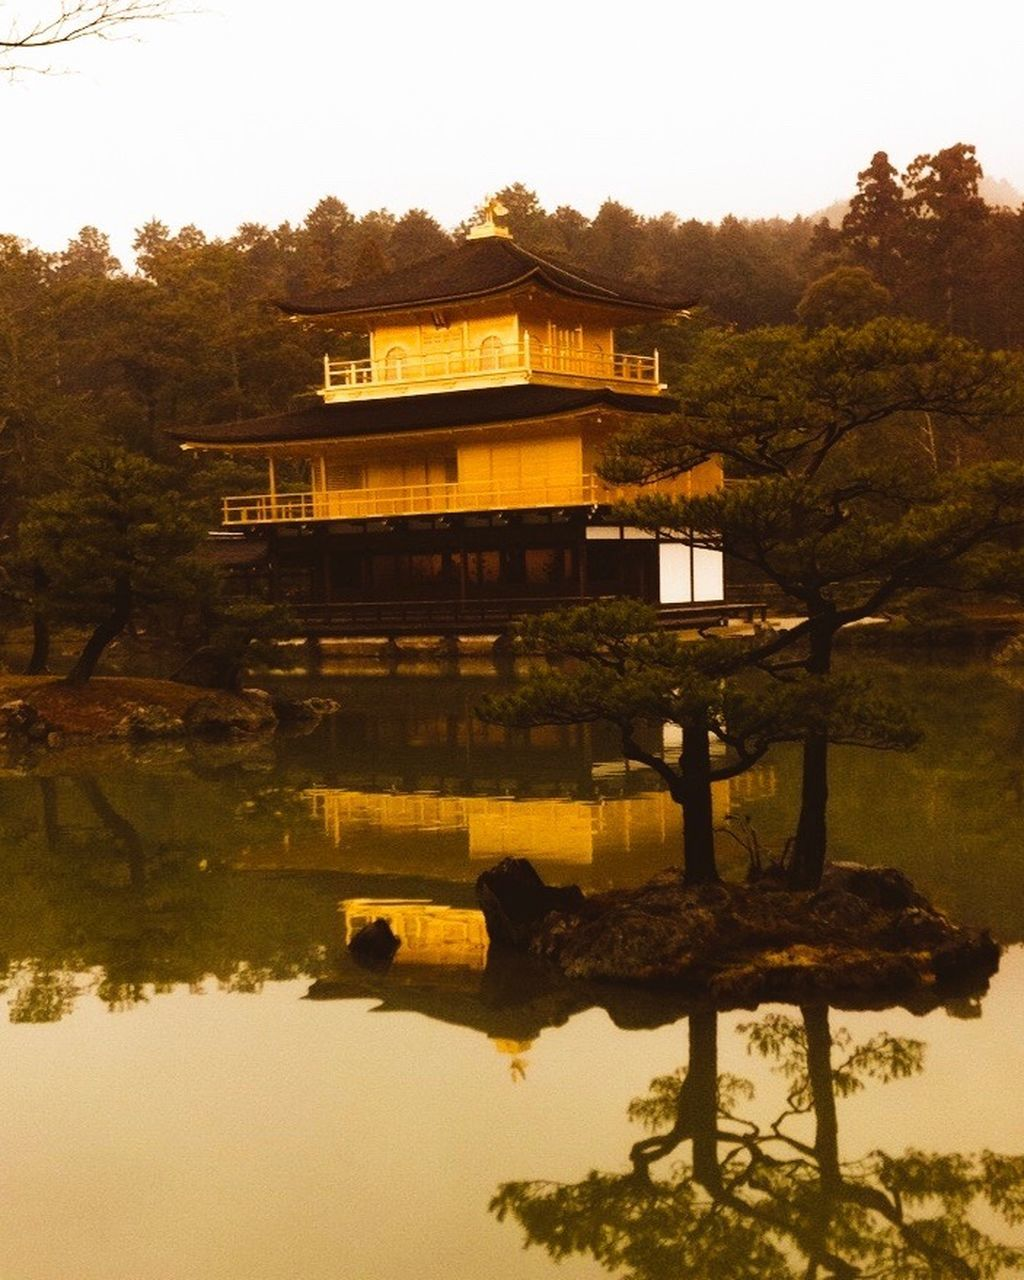 architecture, built structure, tree, building exterior, reflection, water, travel destinations, outdoors, no people, nature, scenics, tranquility, lake, sunset, day, beauty in nature, sky